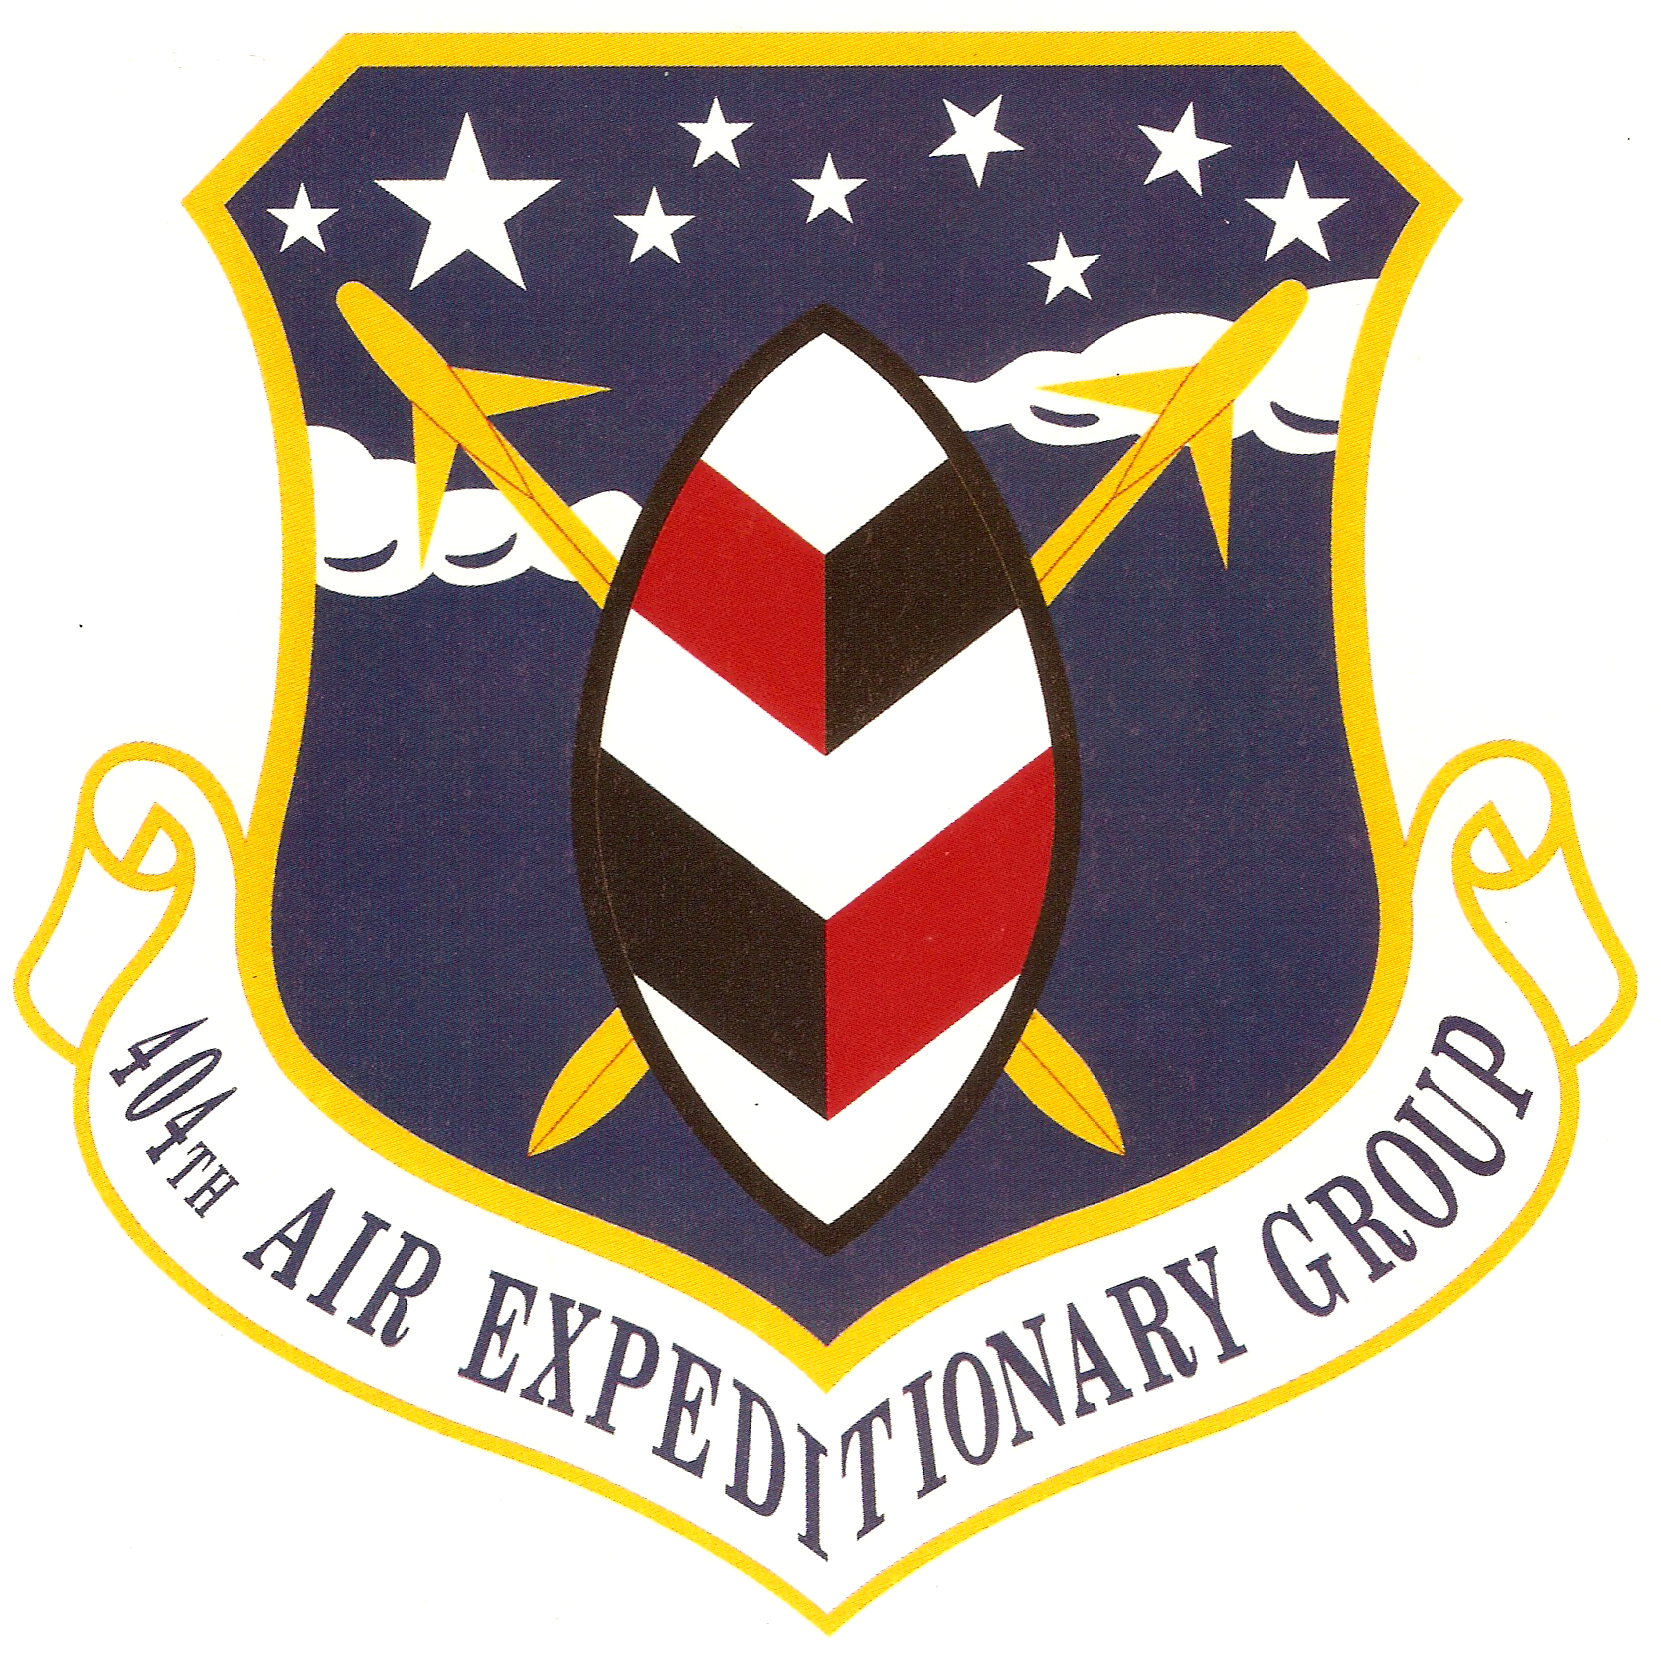 404th Air Expeditionary Group - Wikipedia